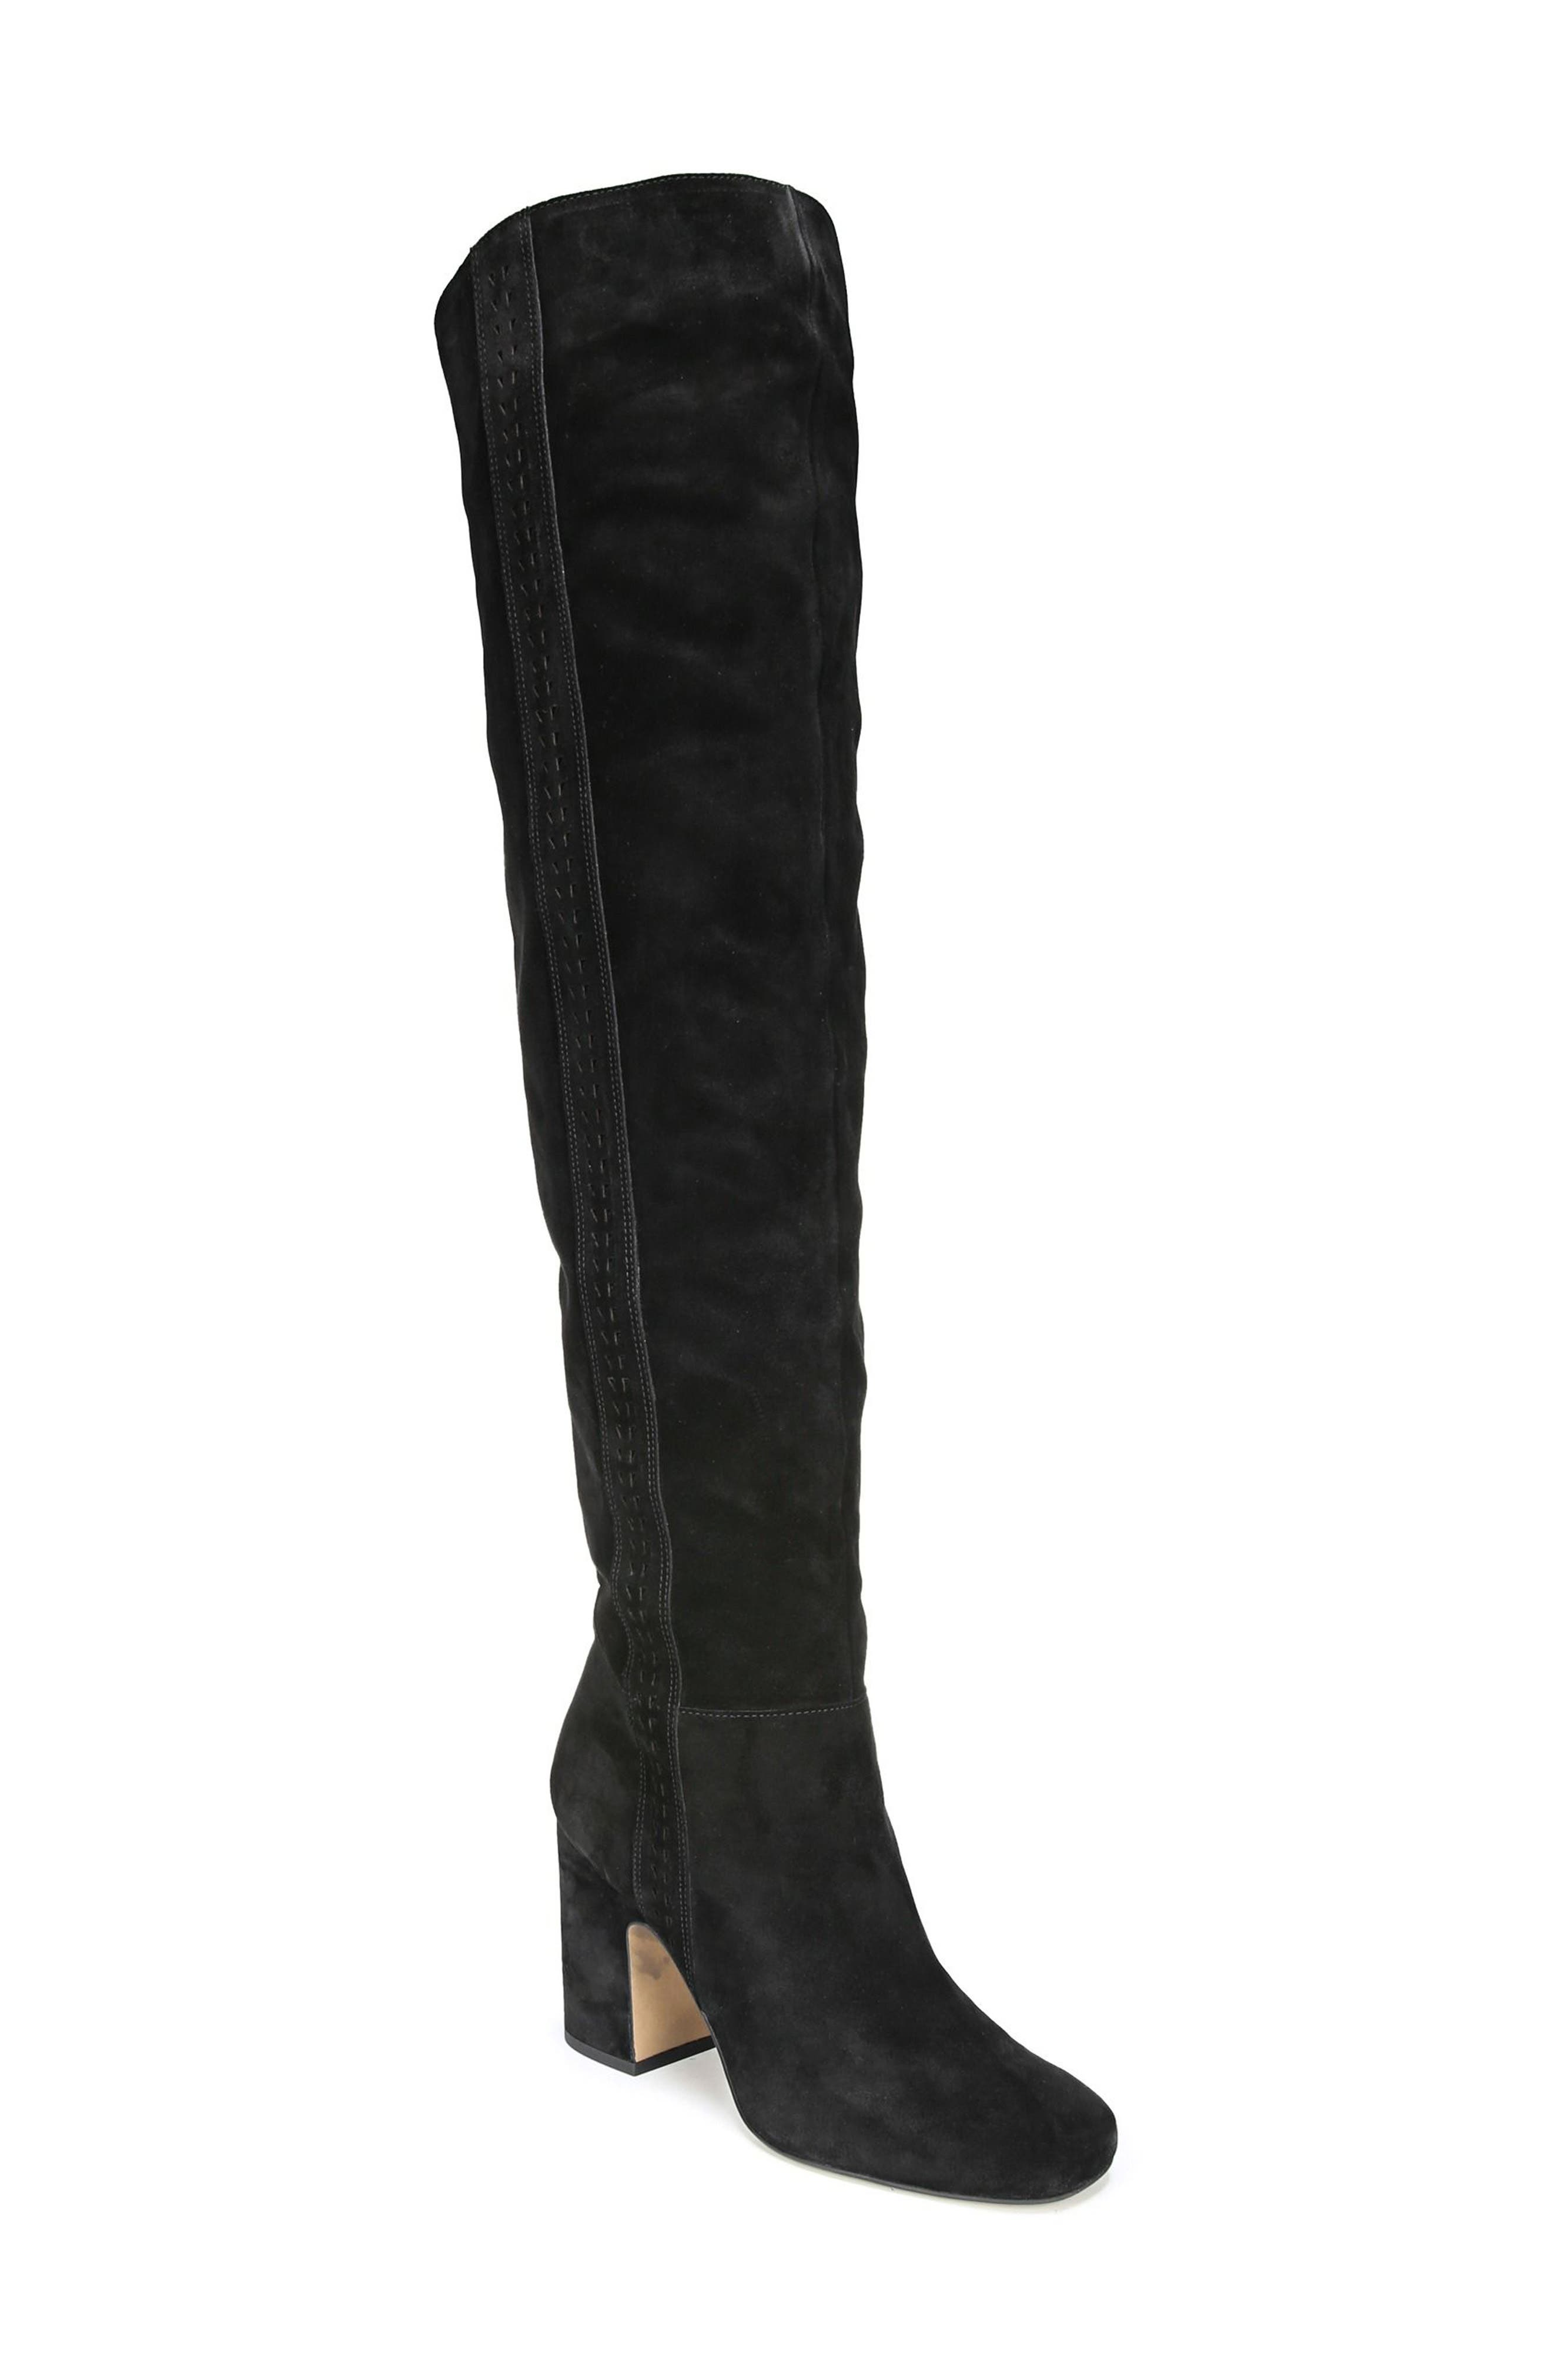 Laurel Over the Knee Boot,                             Main thumbnail 1, color,                             002